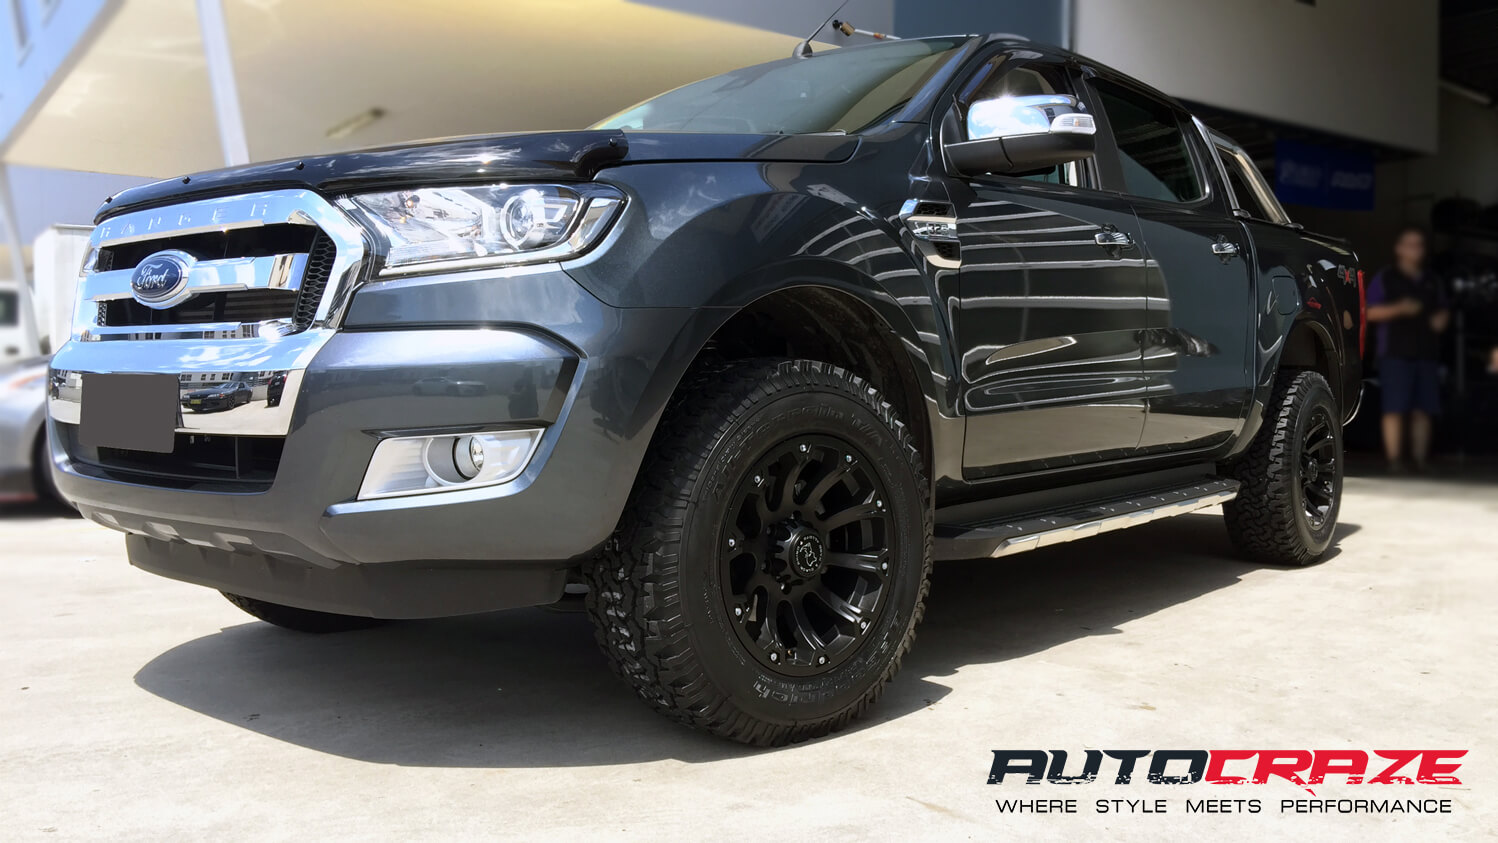 Ford Ranger Rims 4x4 Off Road Wheels Autocraze